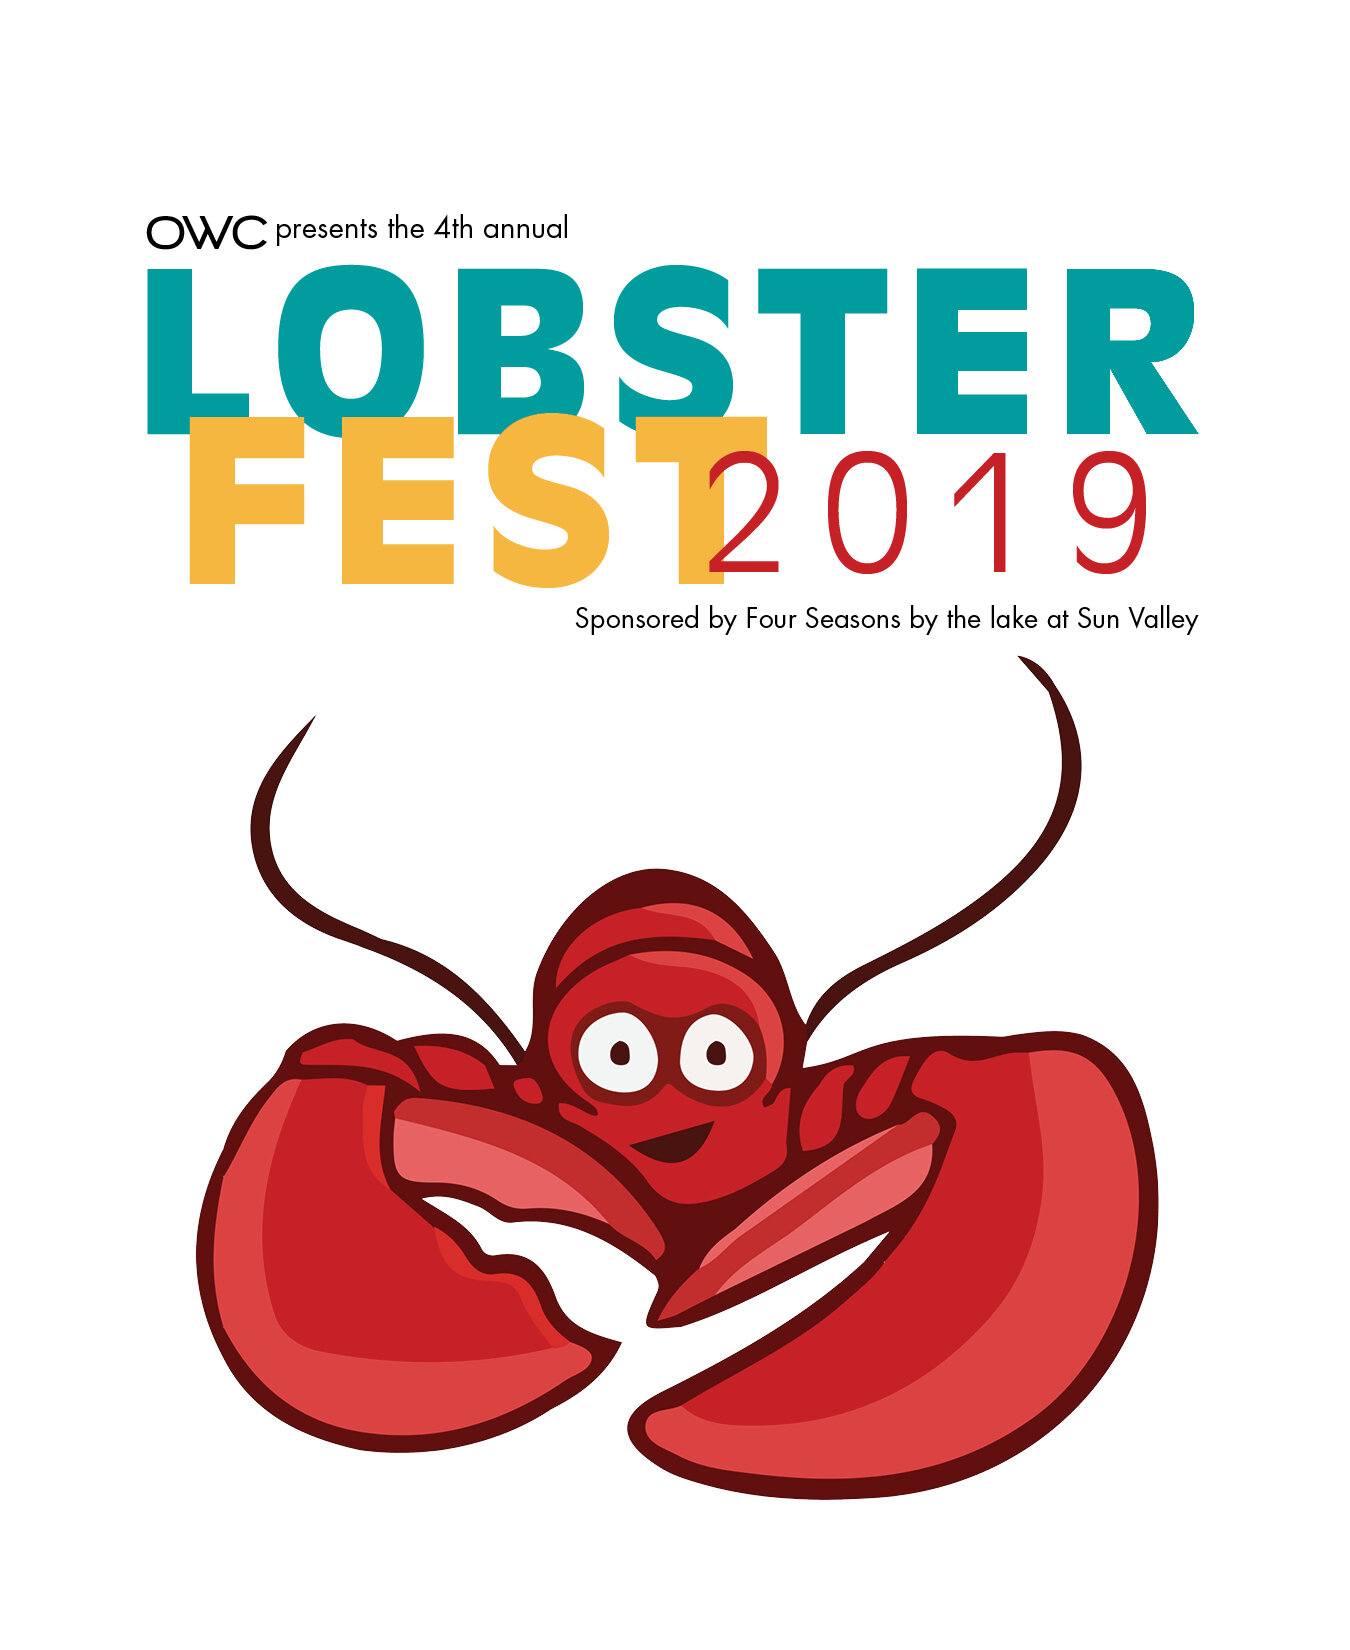 lobsterfest2019 event icon2.jpg